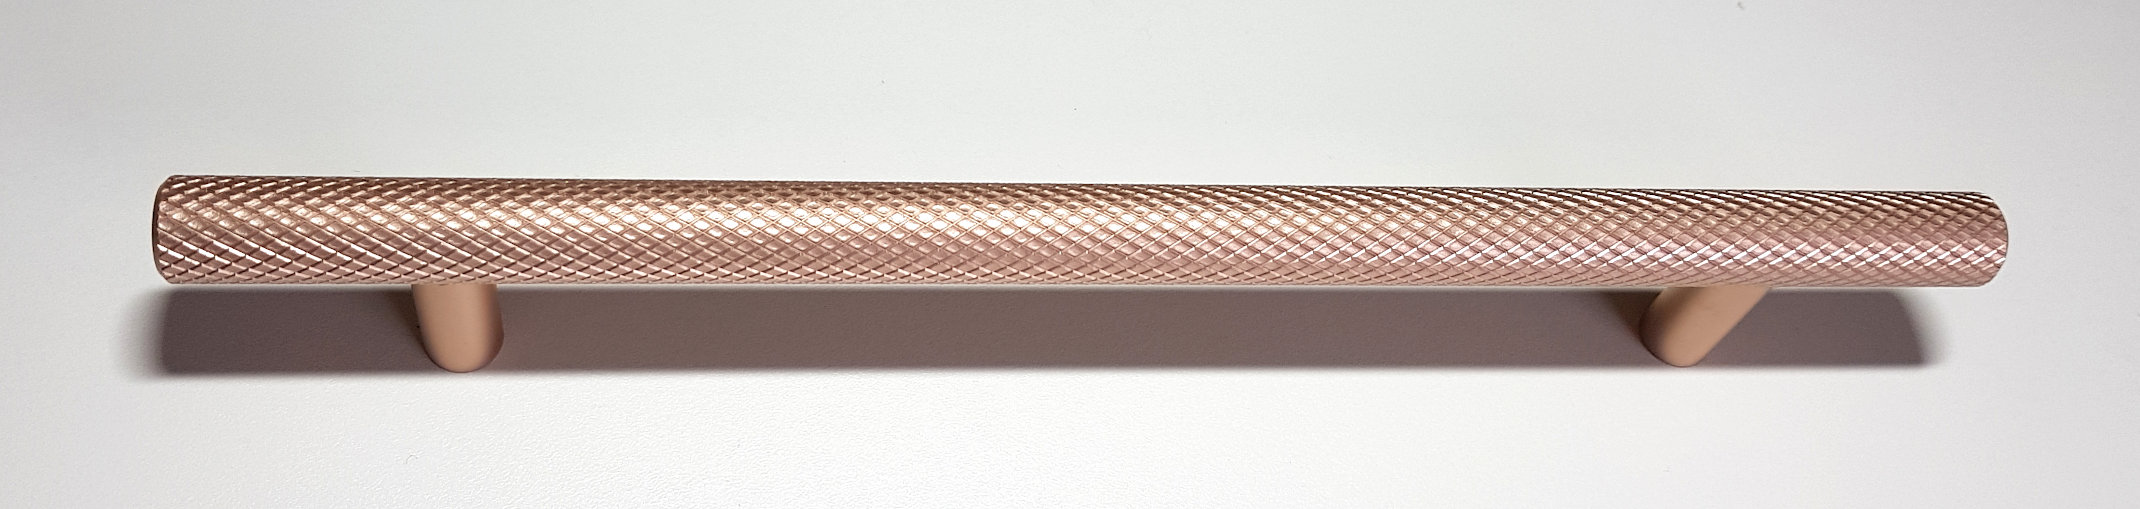 BRUSHED COPPER KNURLED HANDLE 220MM (160MM CENTRES)